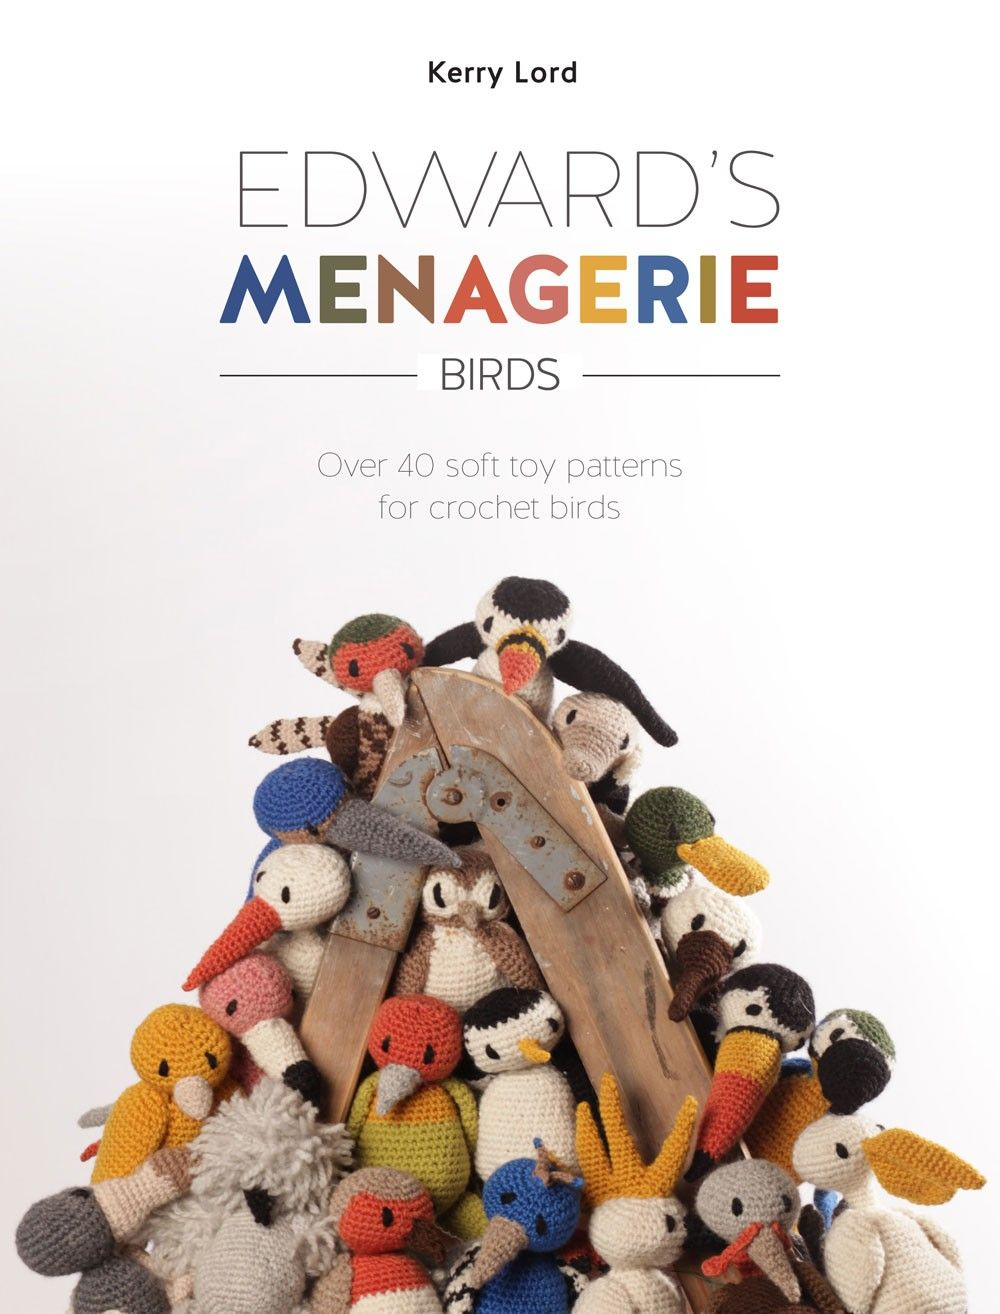 Edwards Menagerie Birds I Just Bought This Book And I Am So Excited